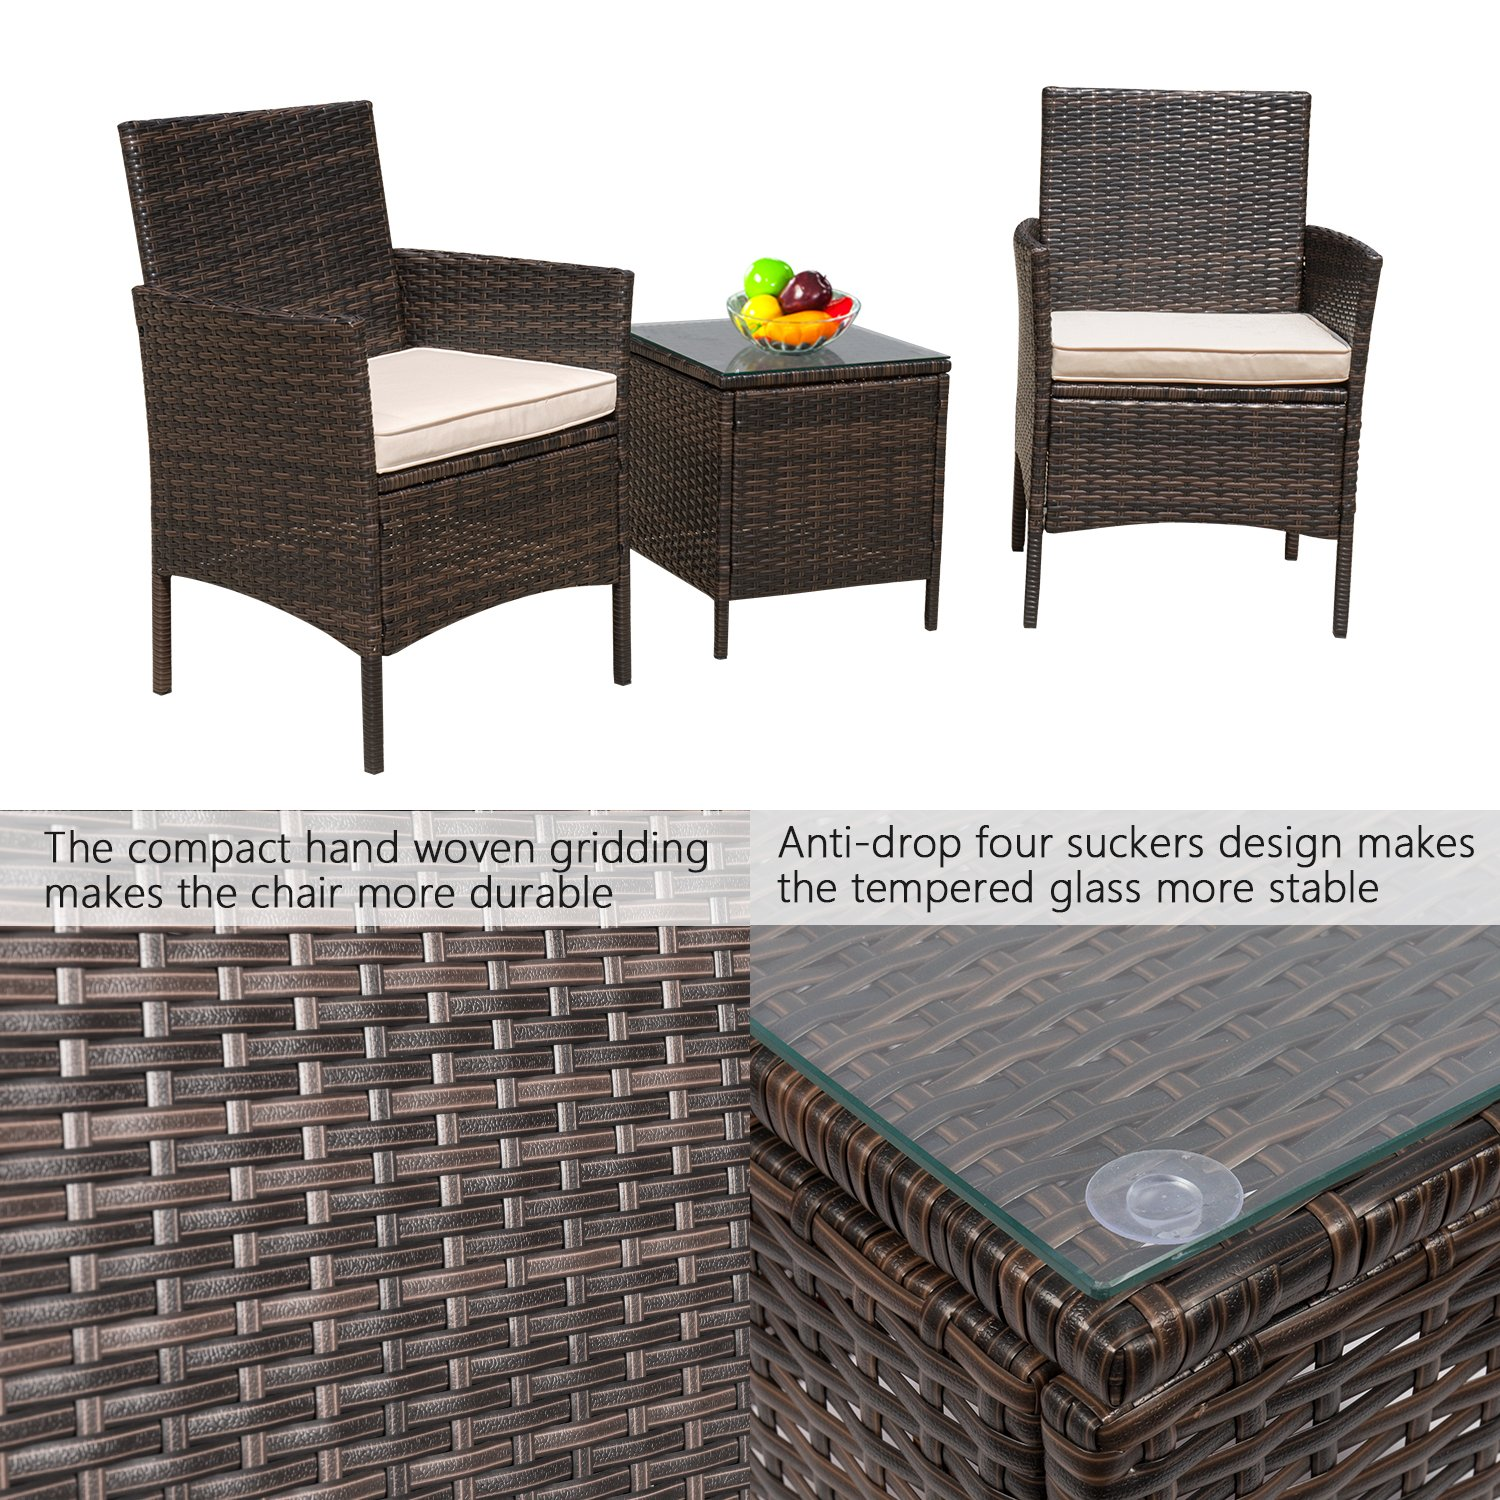 Flamaker 3 Pieces Patio Furniture Set Modern Outdoor Furniture Sets Clearance Cushioned PE Wicker Bistro Set Rattan Chair Conversation Sets with Coffee Table (Brown Wicker) by Flamaker (Image #4)